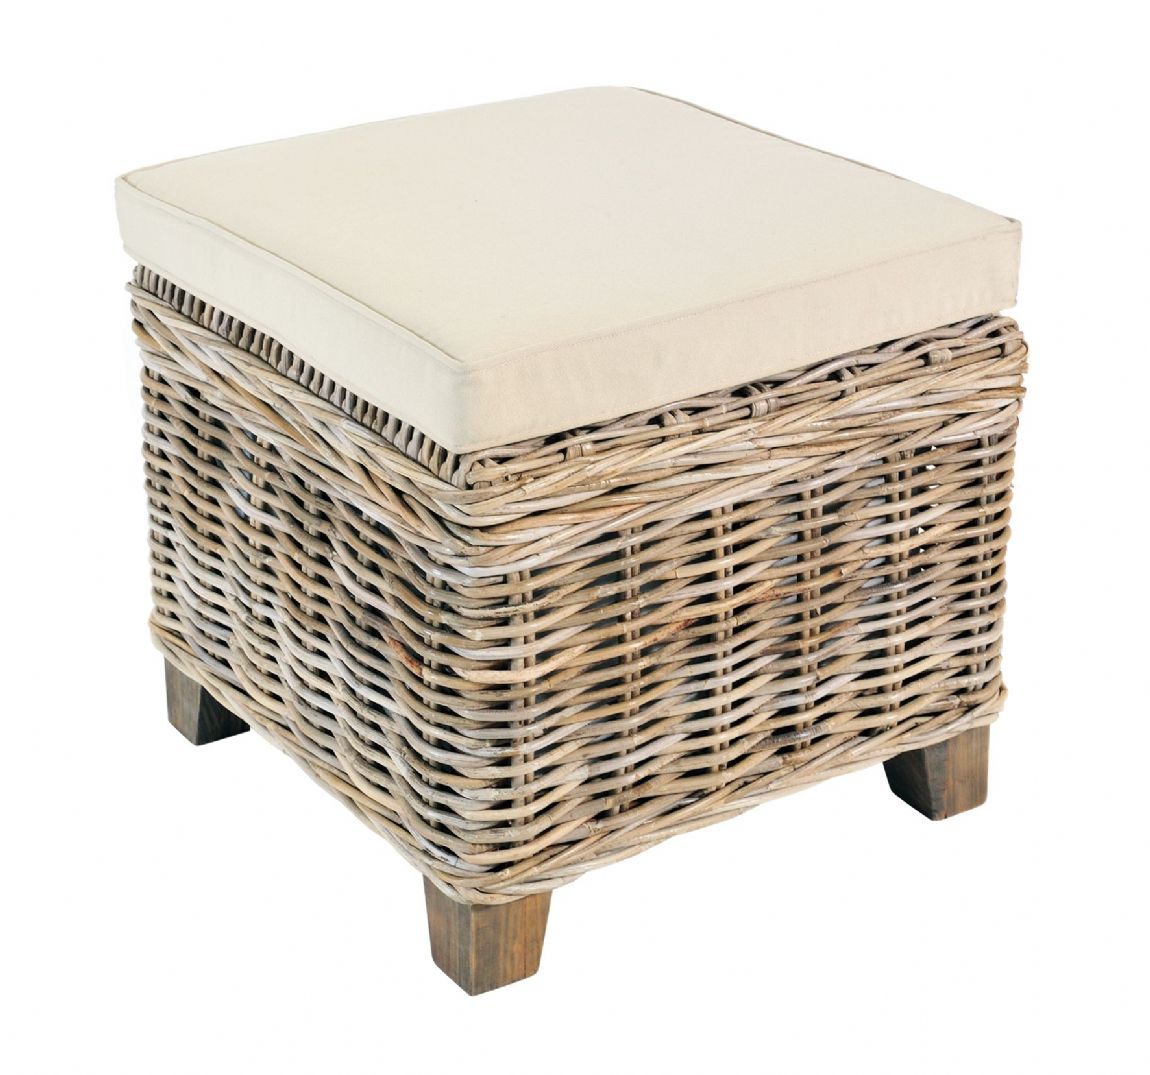 Casares Rattan Storage Stool - Special Order